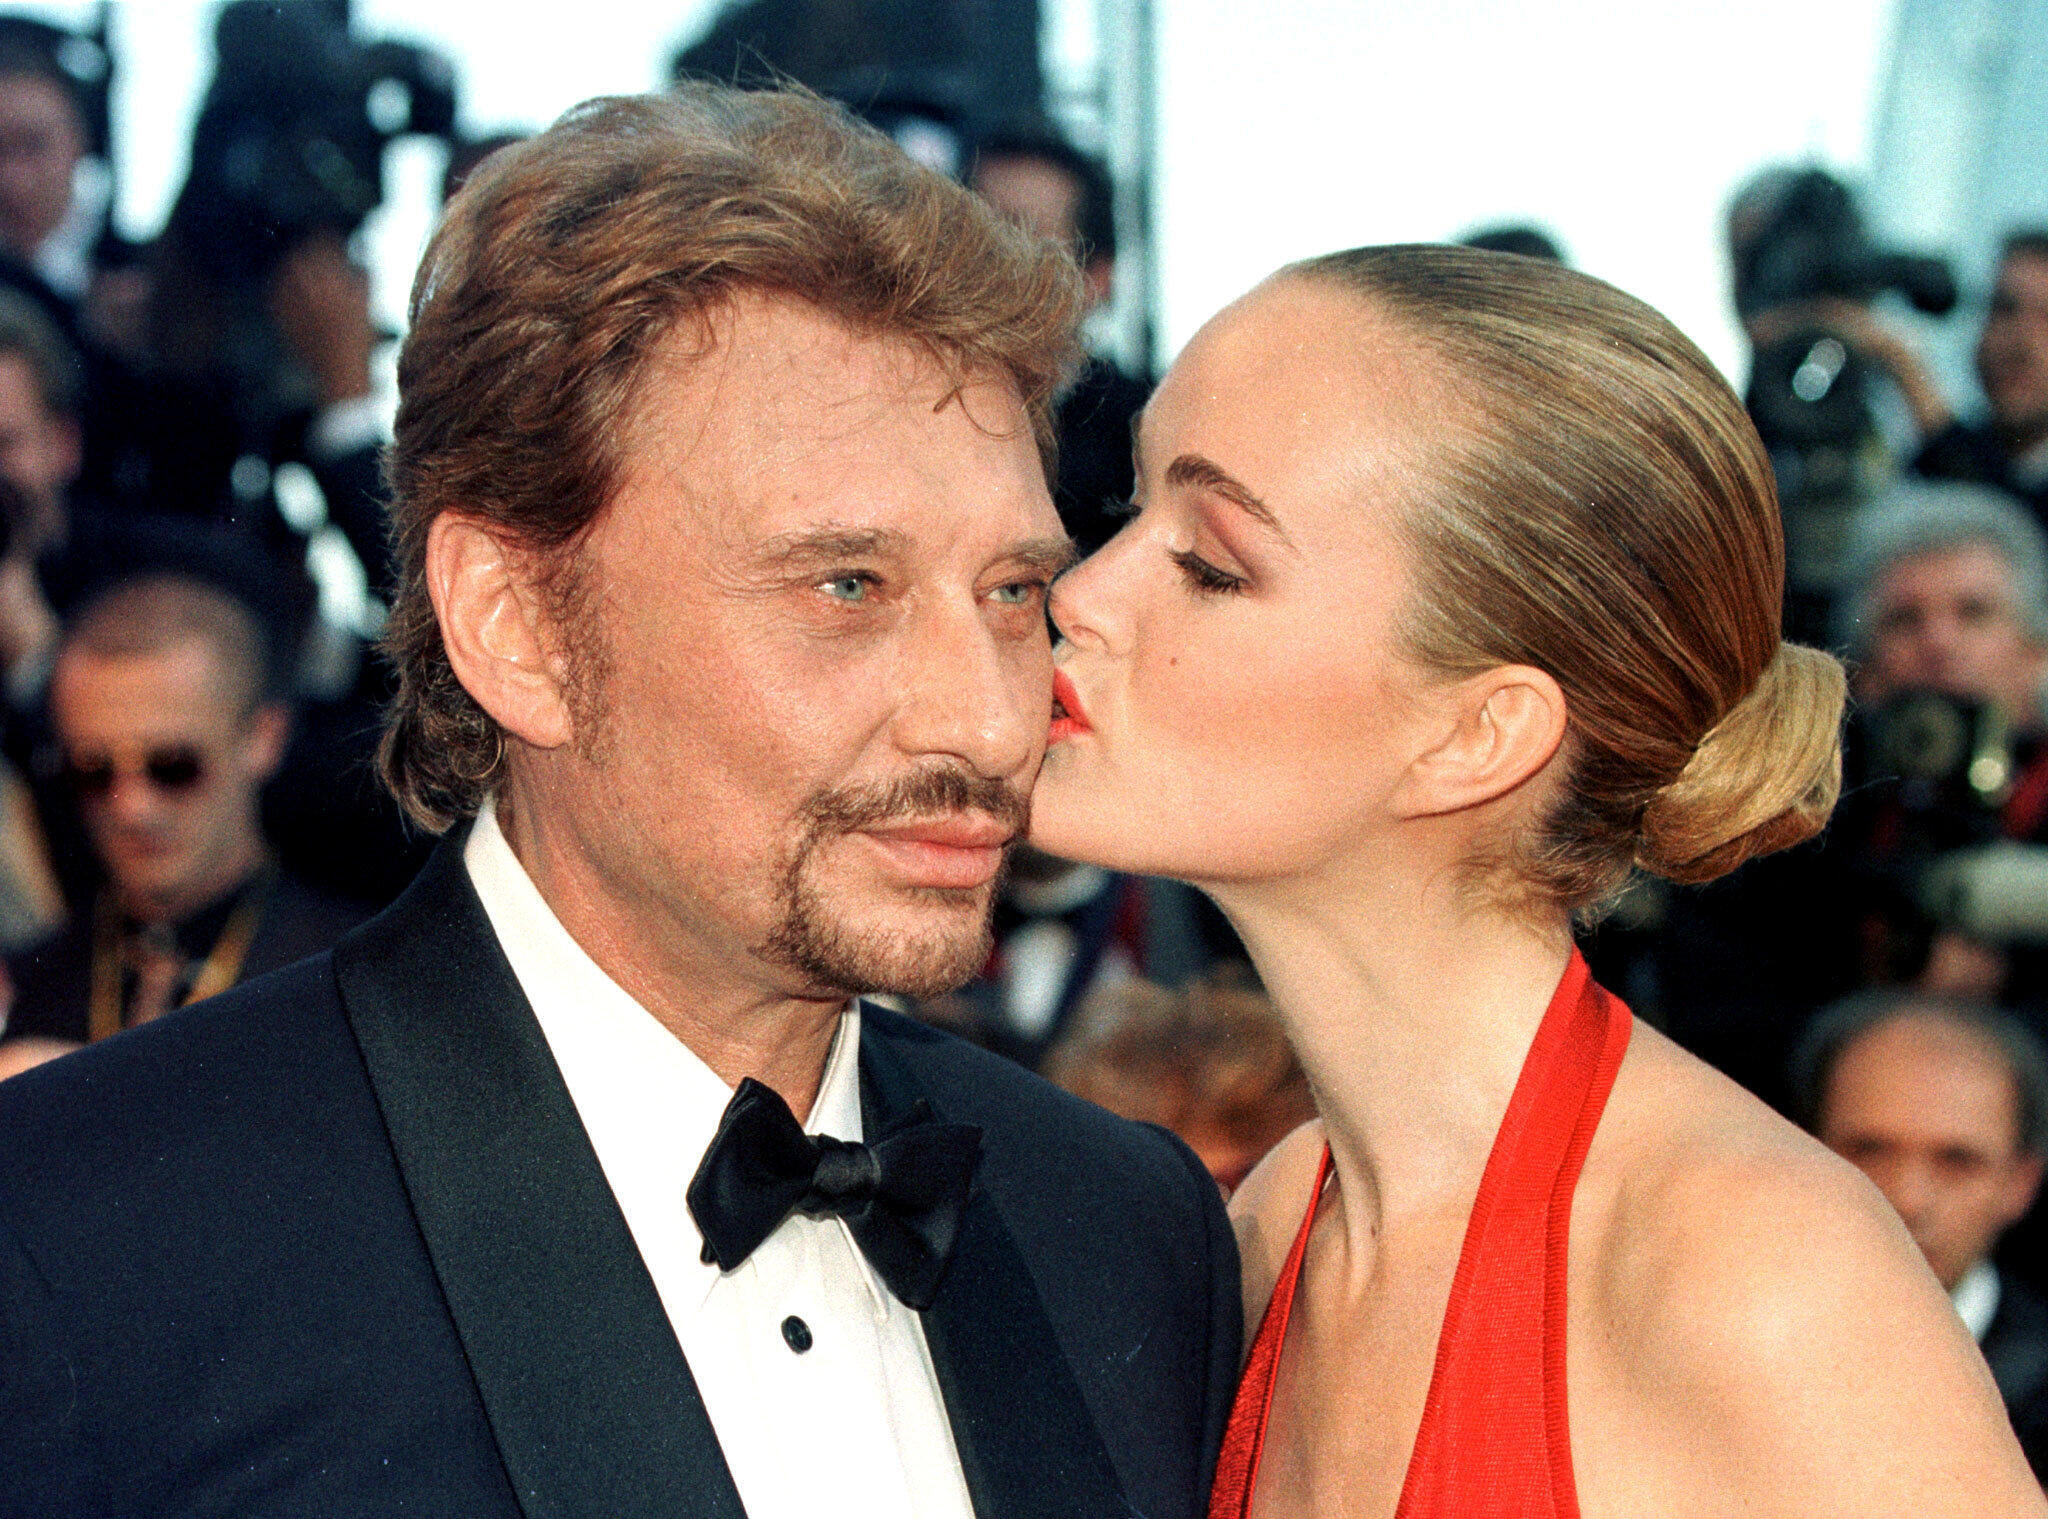 French singer Johnny Hallyday is kissed by his wife Laeticia as they arrive for the opening of the 51st Cannes Film Festival in Cannes, May 13, 1998.